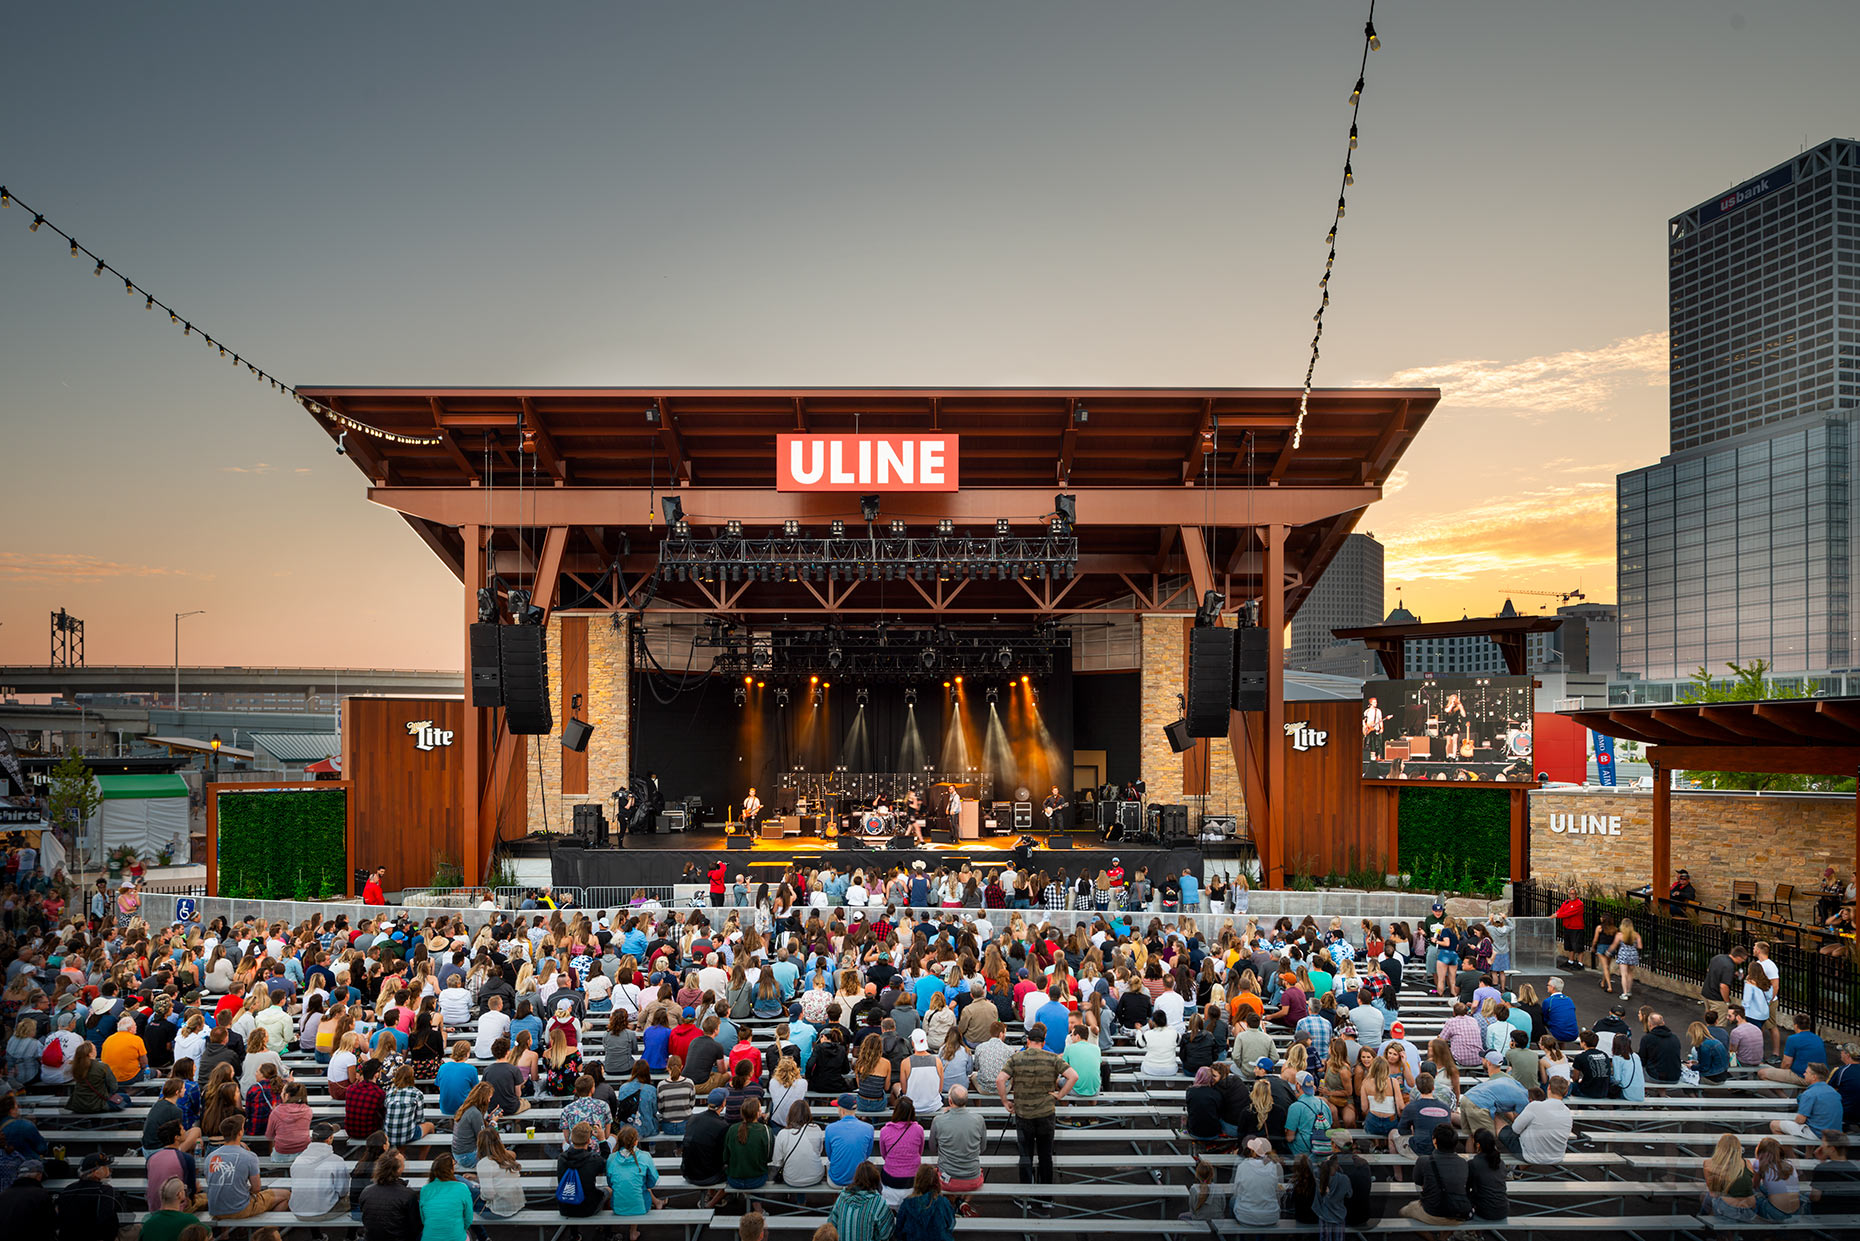 Uline Warehouse Stage at Summerfest in Milwaukee